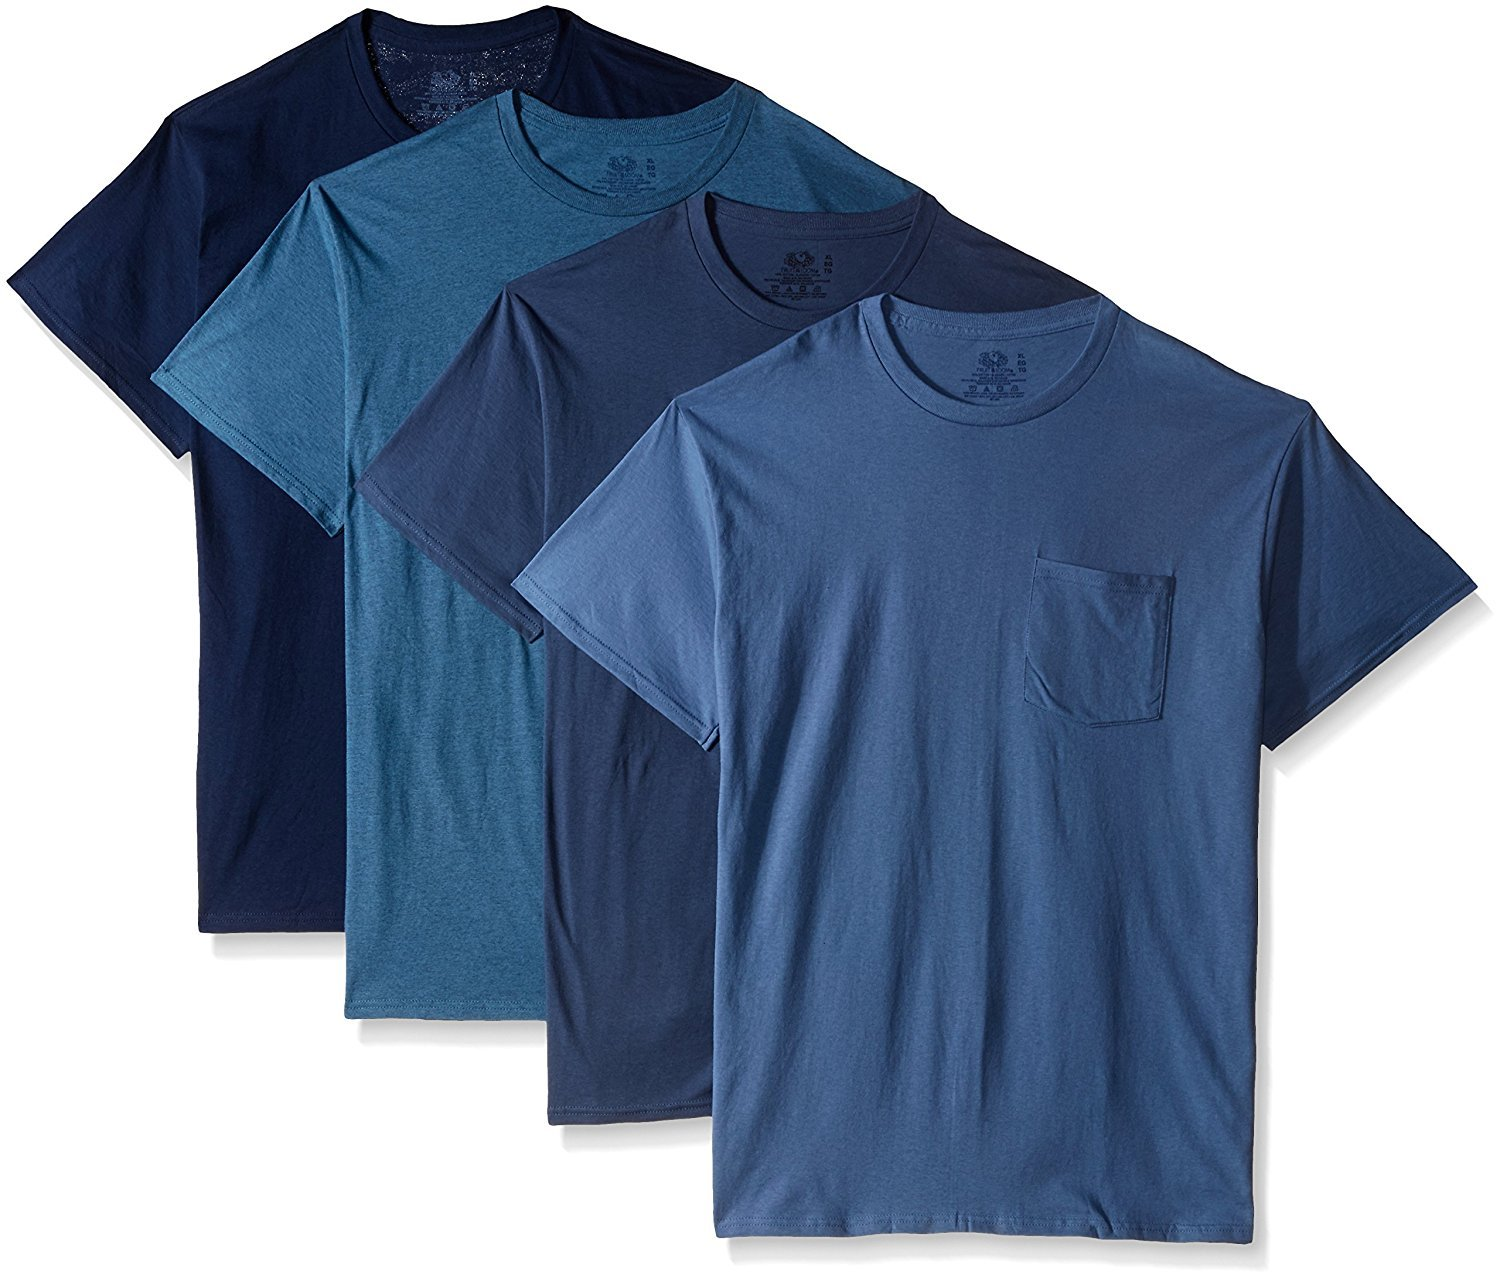 Fruit of the Loom Fruit of The Loom Men's 4-Pack Pocket Crew-Neck T-Shirt - Colors May Vary (Blues Collection, Medium)